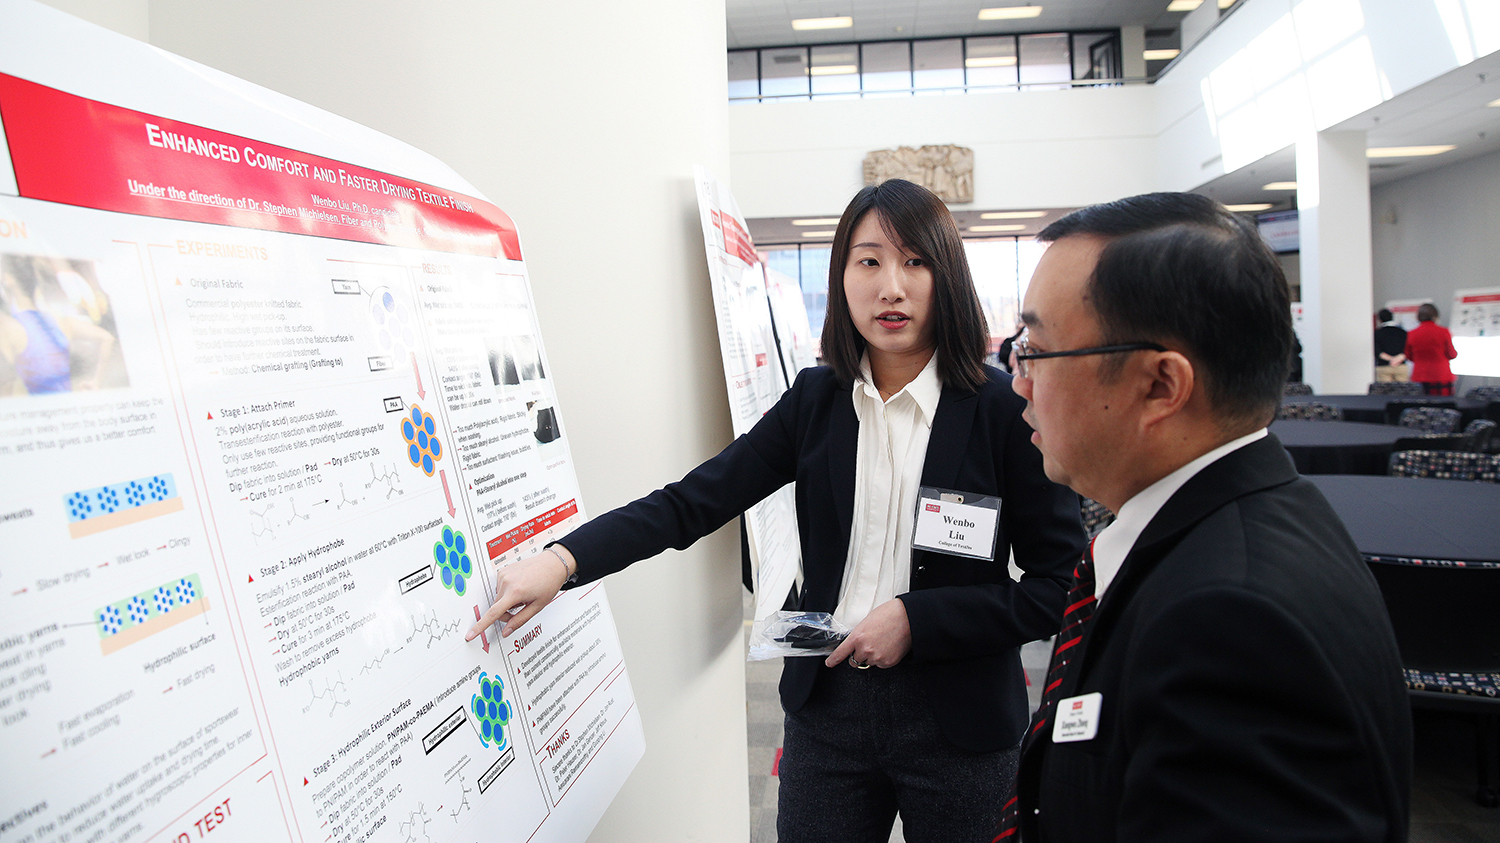 students presenting her poster presentation